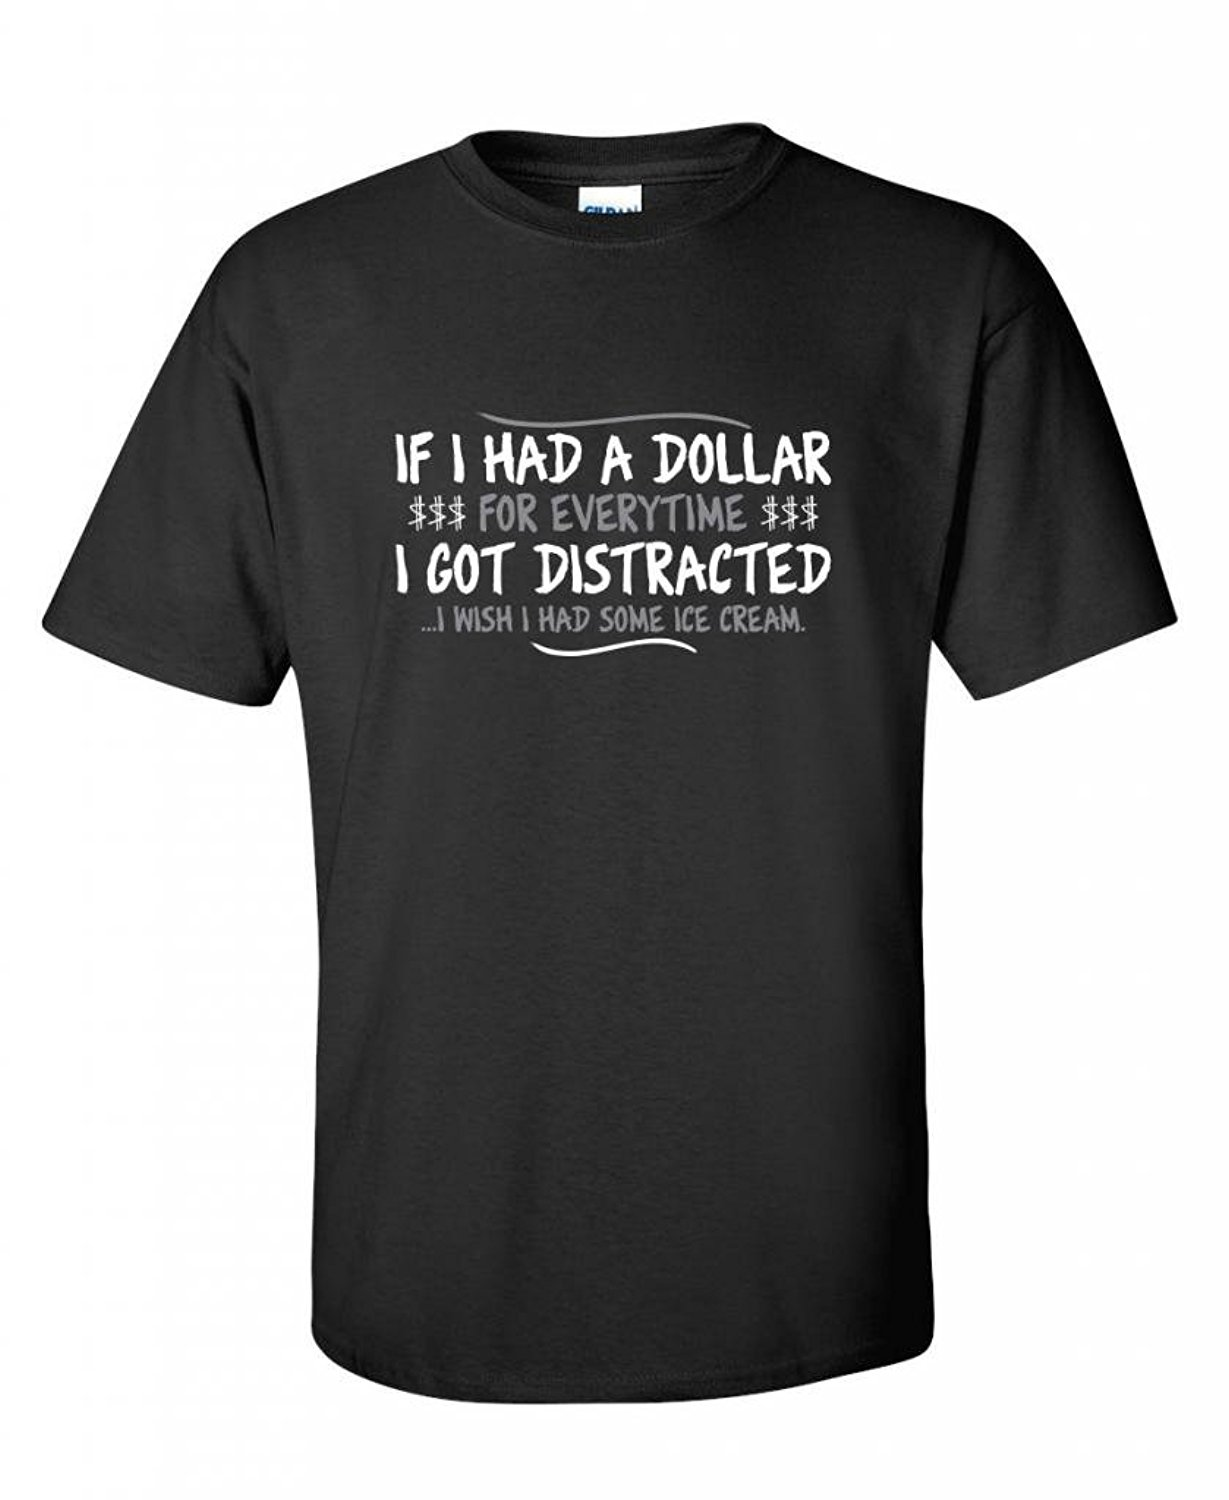 Design t shirt maker free - Shirt Maker If I Had A Dollar For Everytime I Got Distracted Sarcastic Very Men S Design